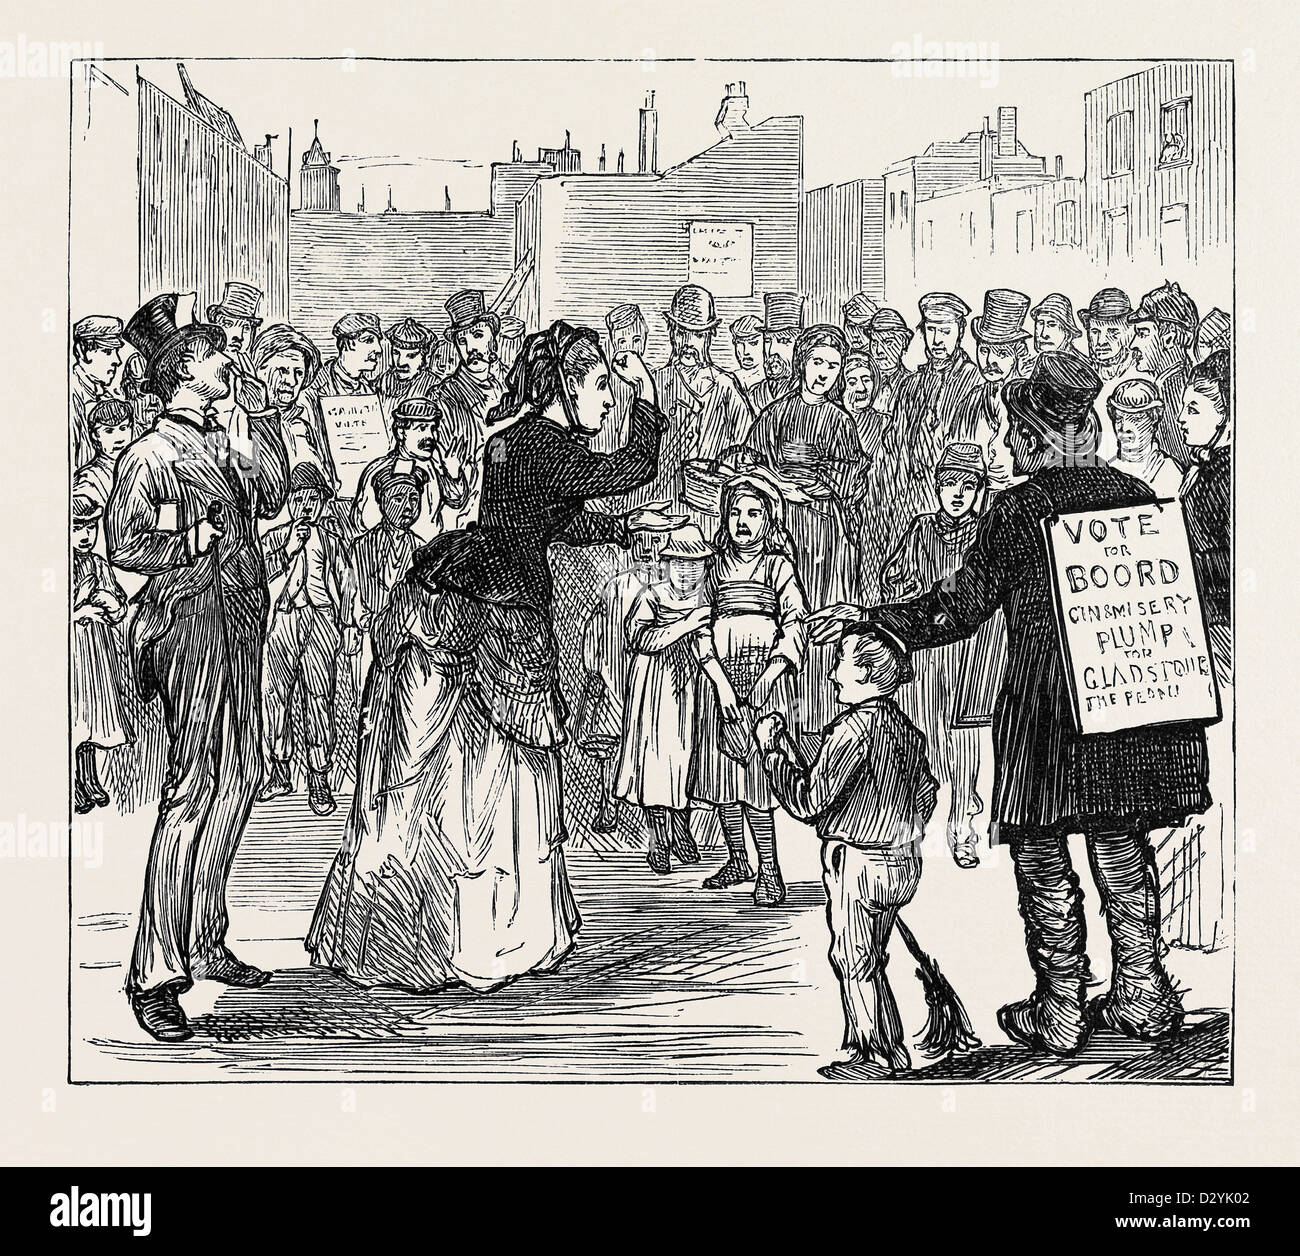 METROPOLITAN BOROUGHS ELECTION: WOMAN'S RIGHTS LONDON 1874 - Stock Image